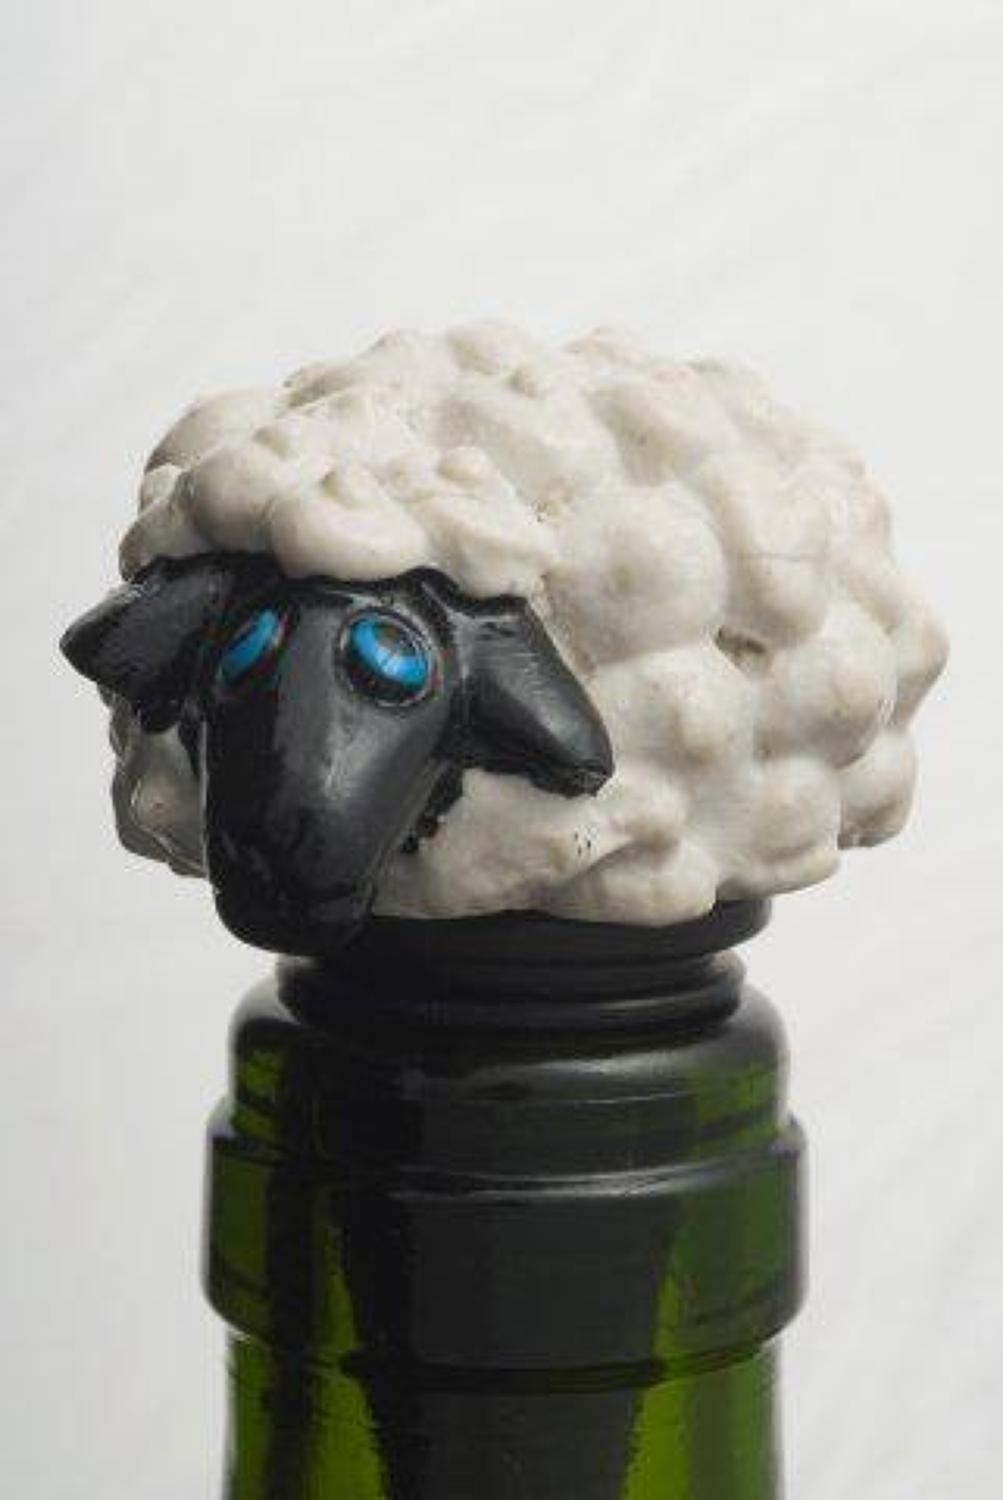 Black Face Sheep bottle stopper